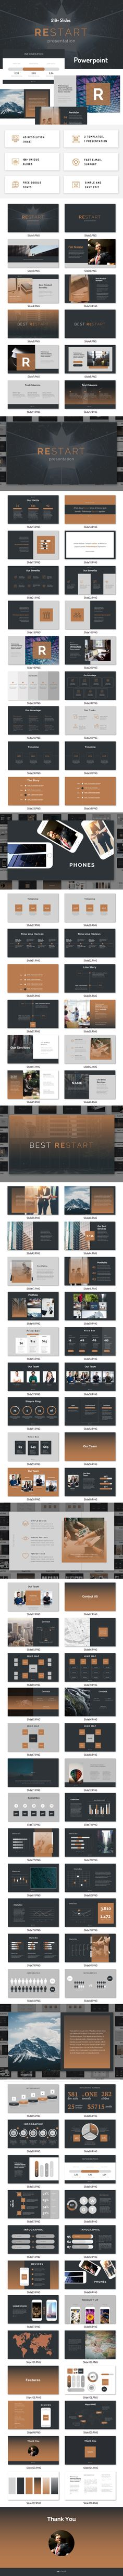 Restart - Business Powerpoint